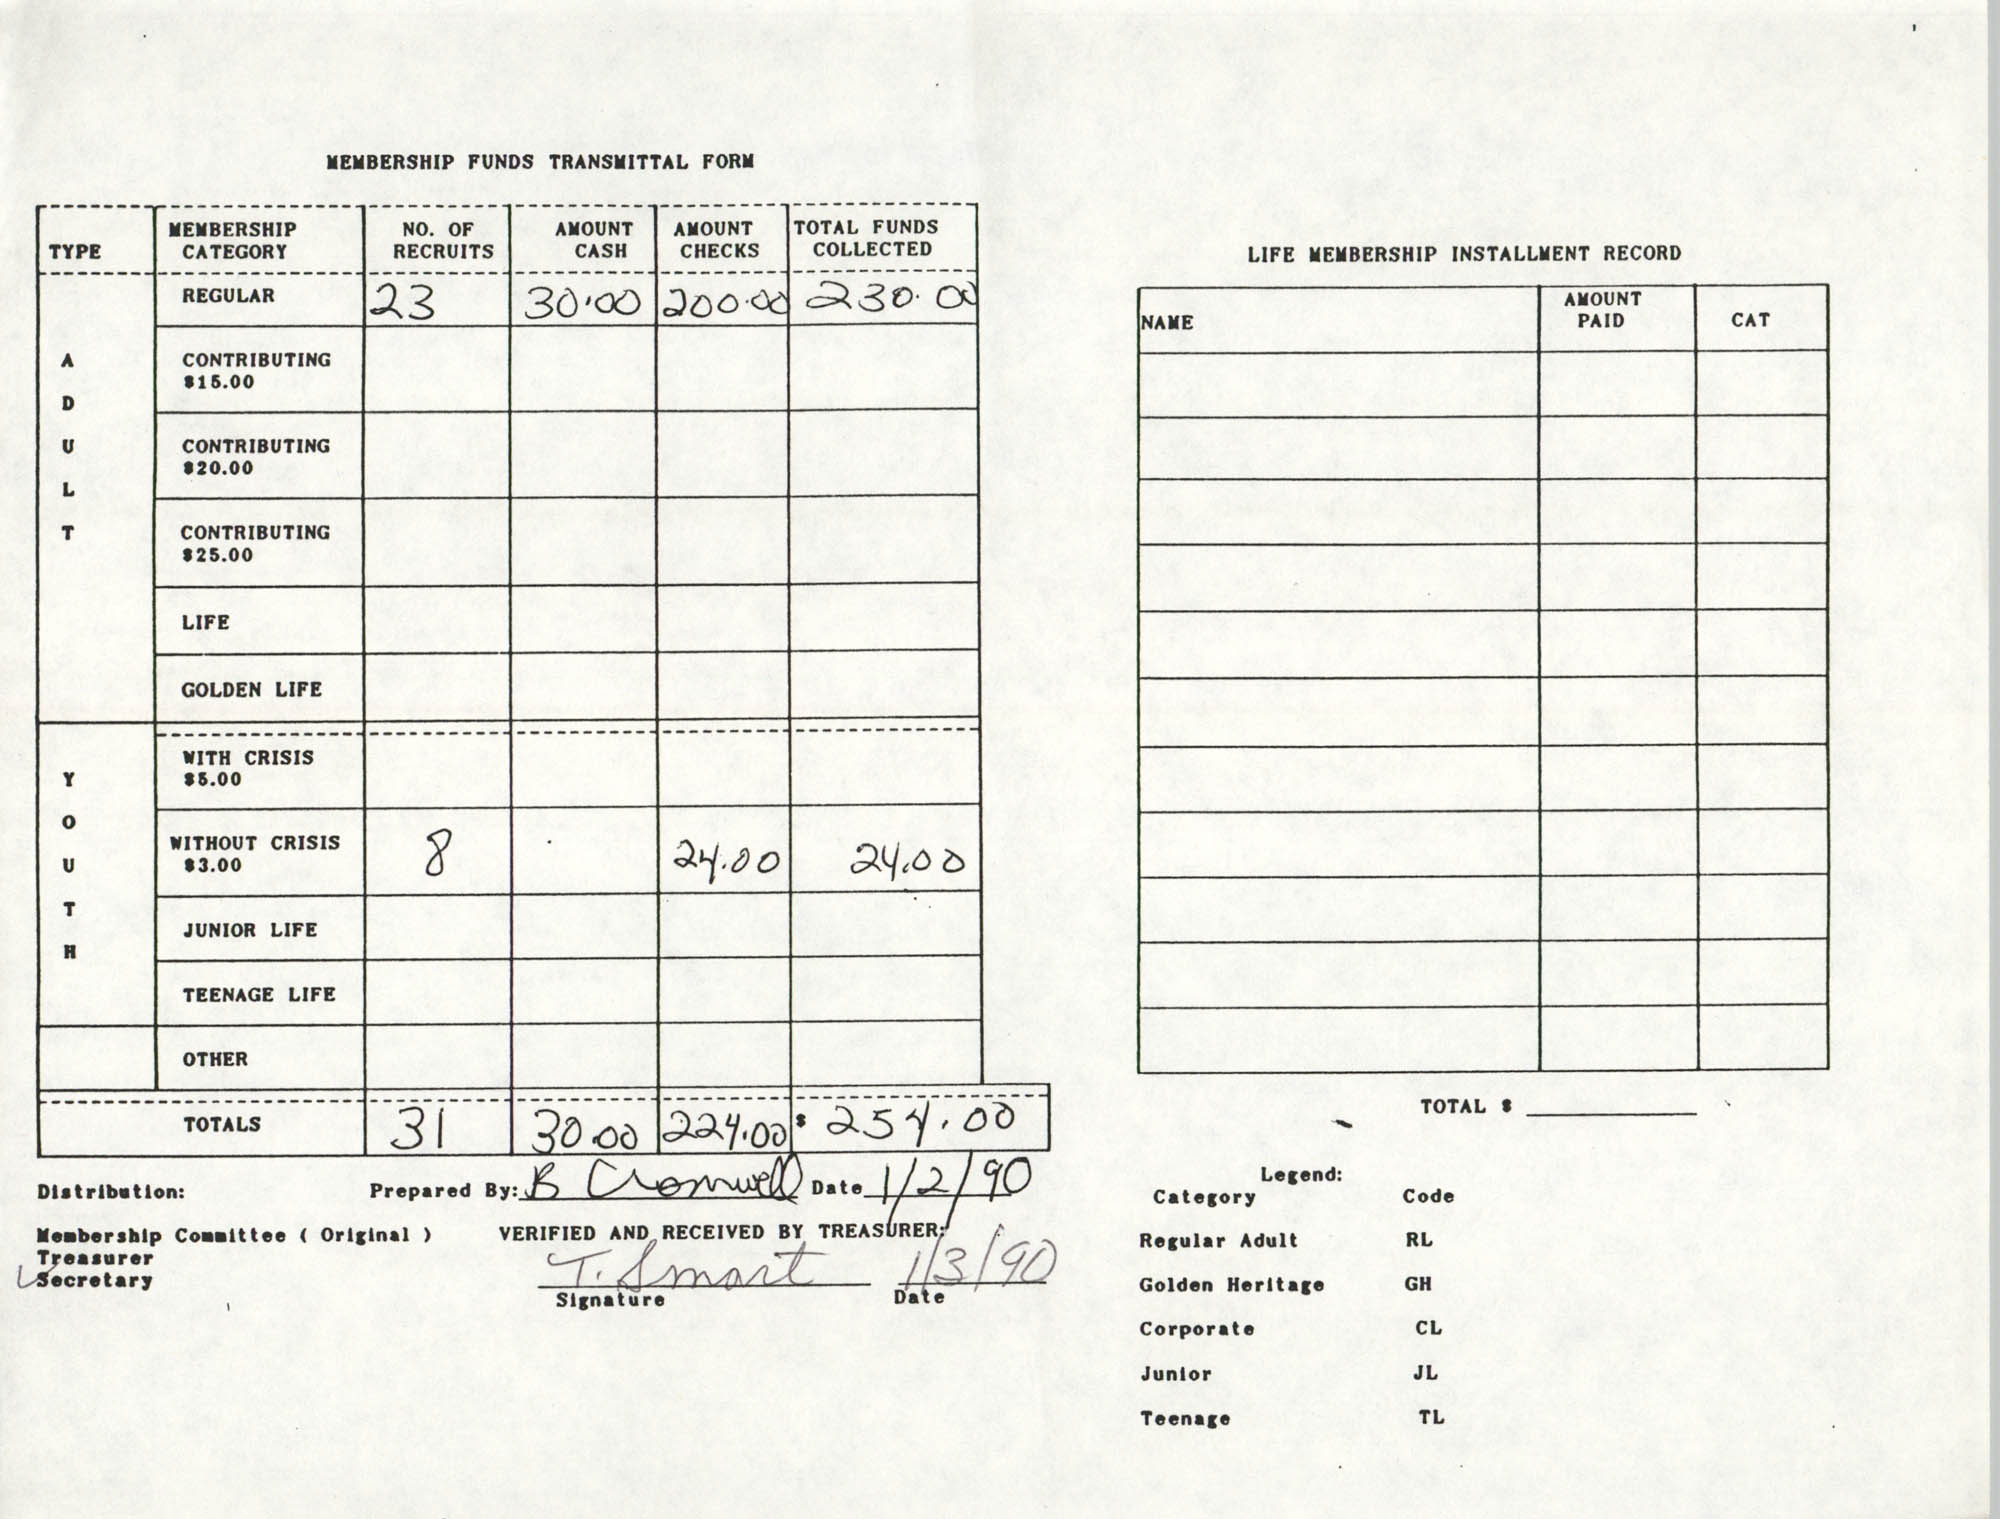 Charleston Branch of the NAACP Funds Transmittal Forms, January 1990, Page 1